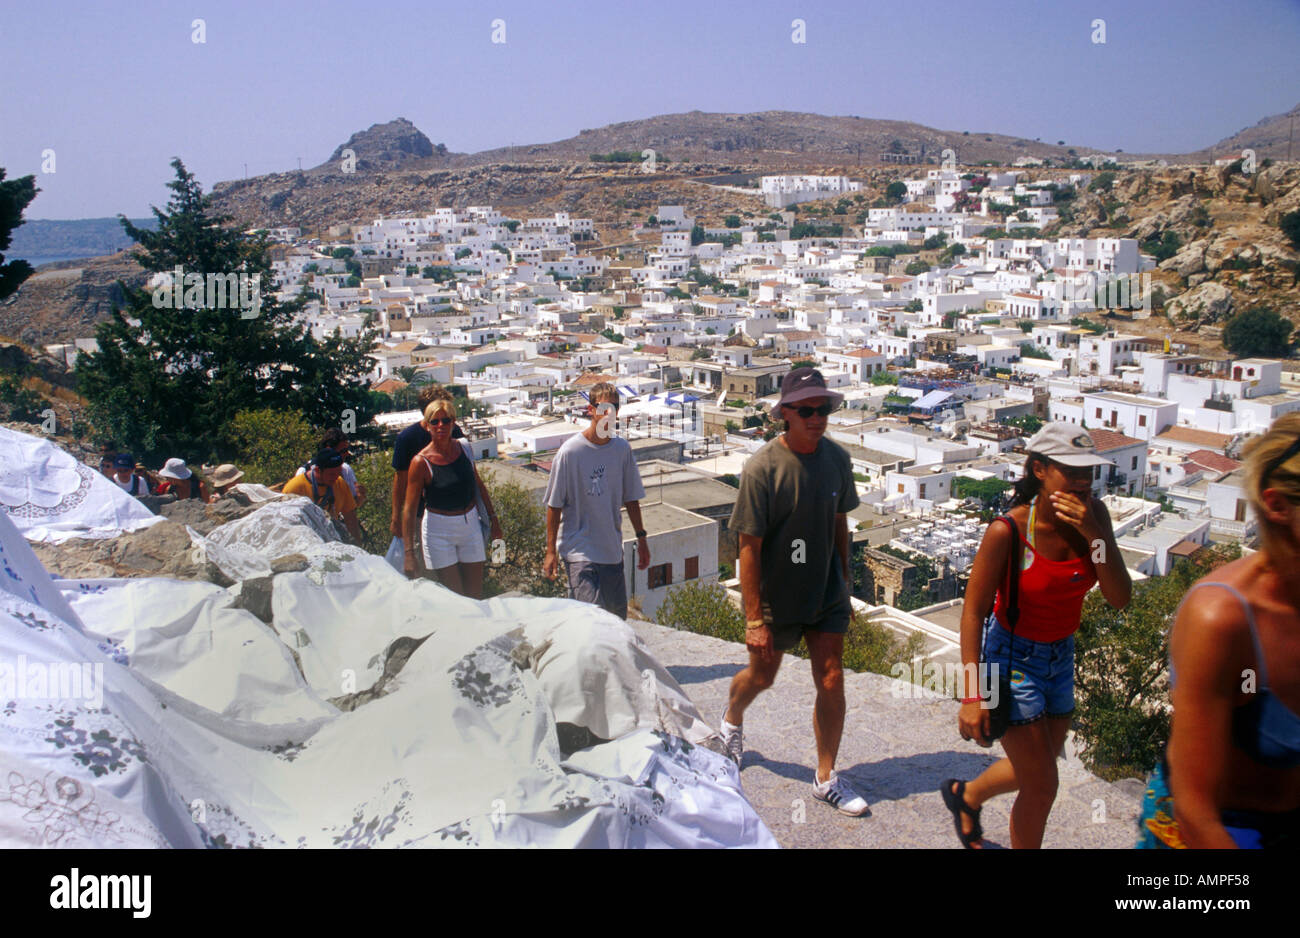 White houses in the village of Lindos on the island of Rhodes in Greece Rhodos - Stock Image